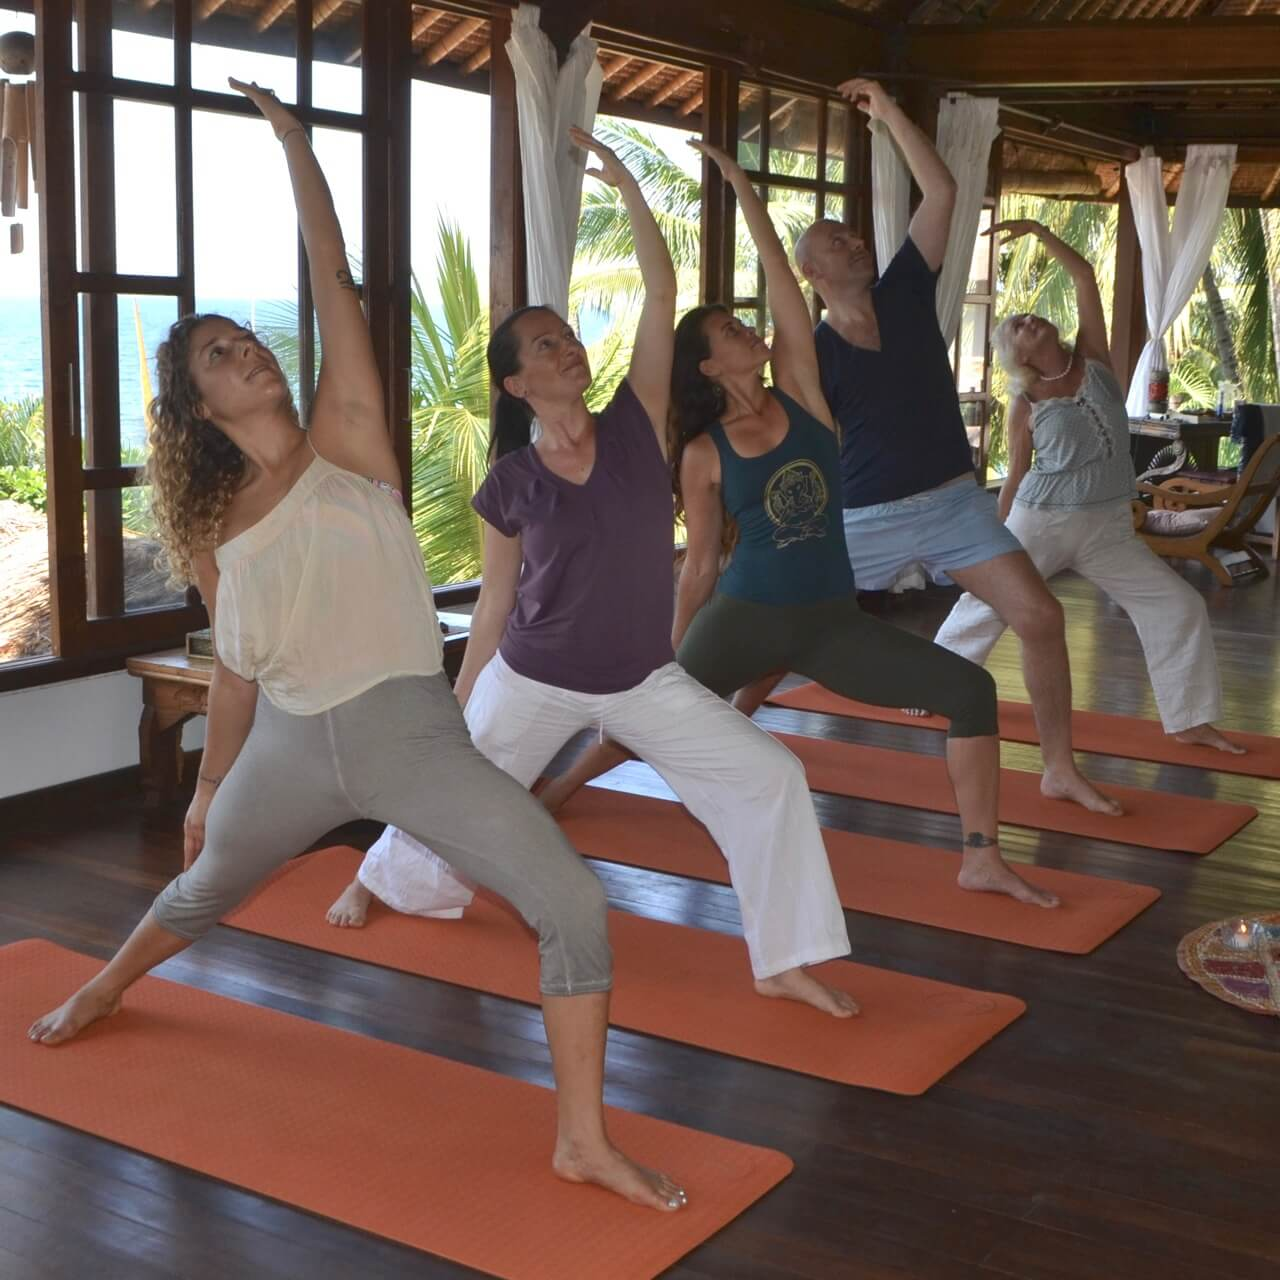 Yoga, Ayurveda or Healing Energy Retreats directly by the ocean